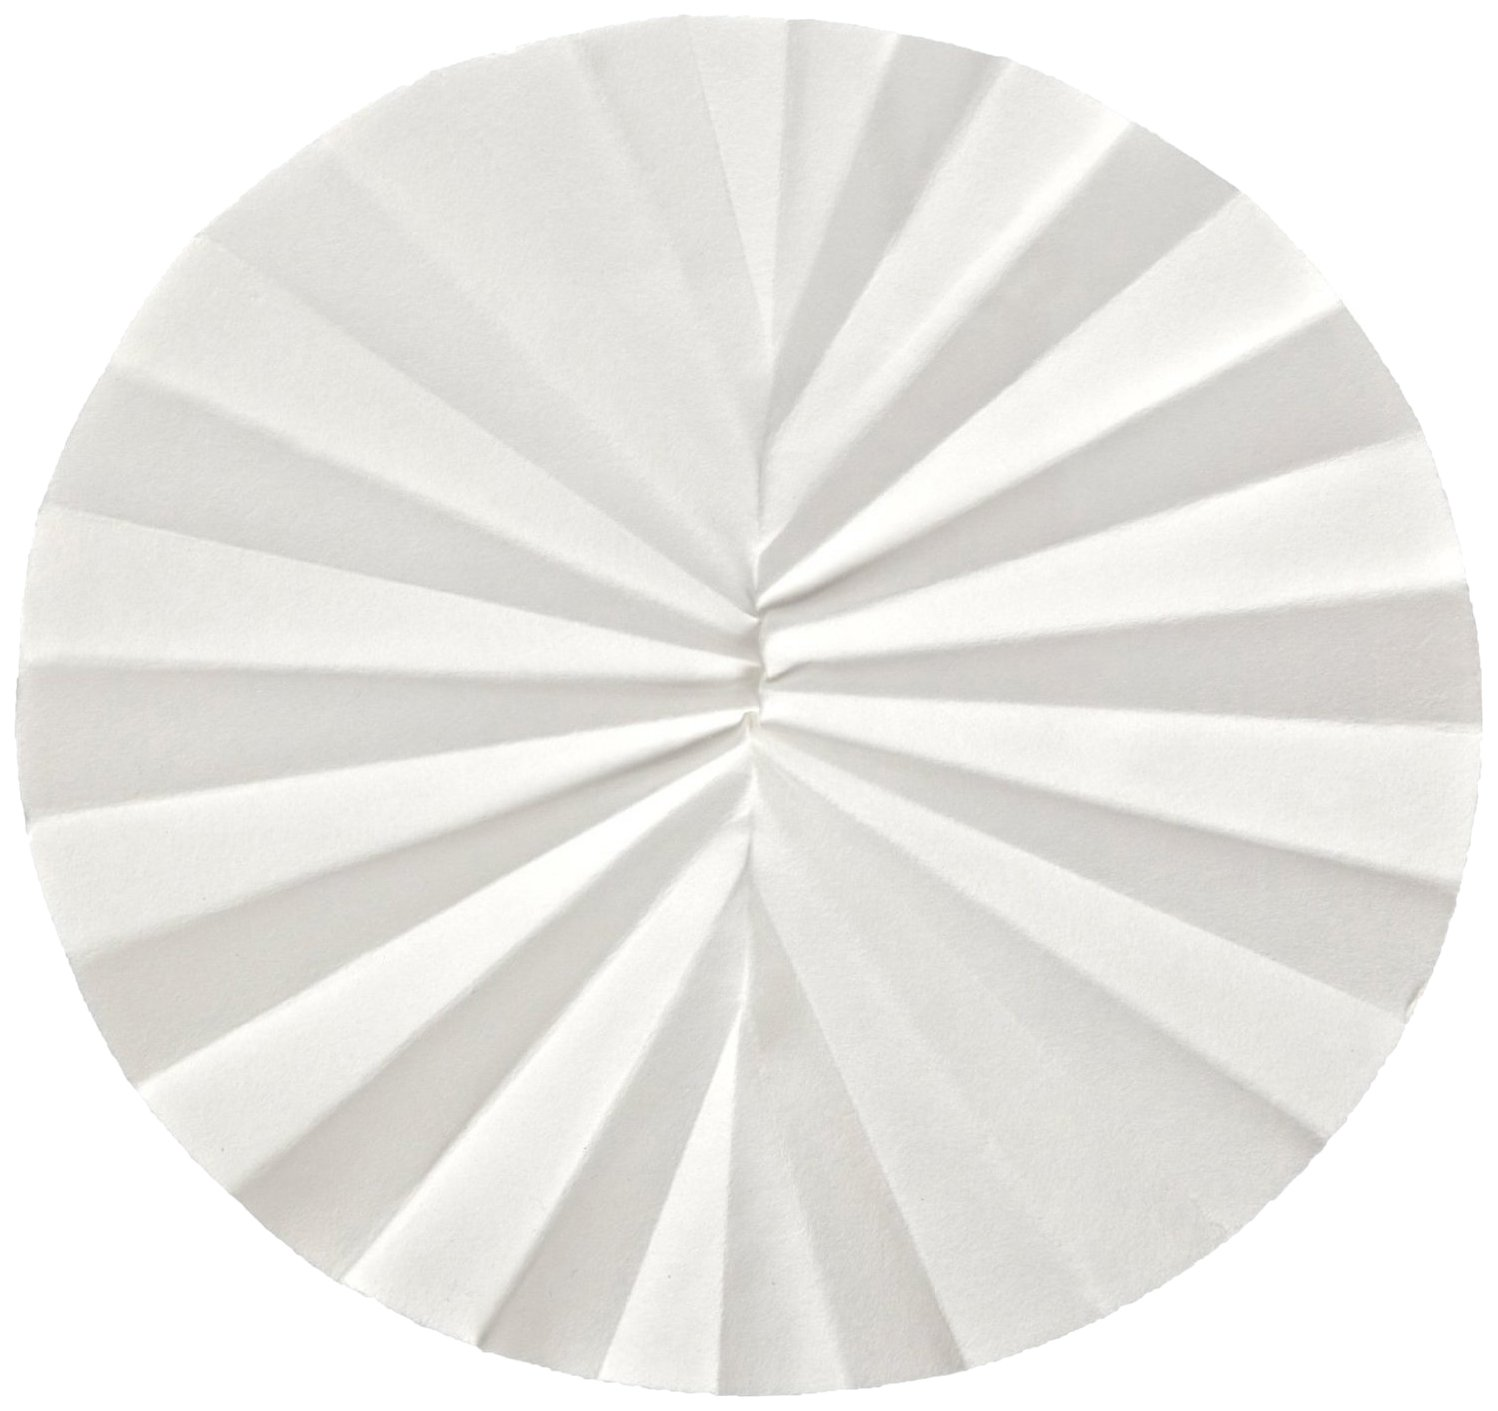 Ahlstrom 5150-2400 Pleated Filter Paper, 25 Micron, Rapid Flow, Grade 515, 24cm Diameter (Pack of 100) by Ahlstrom